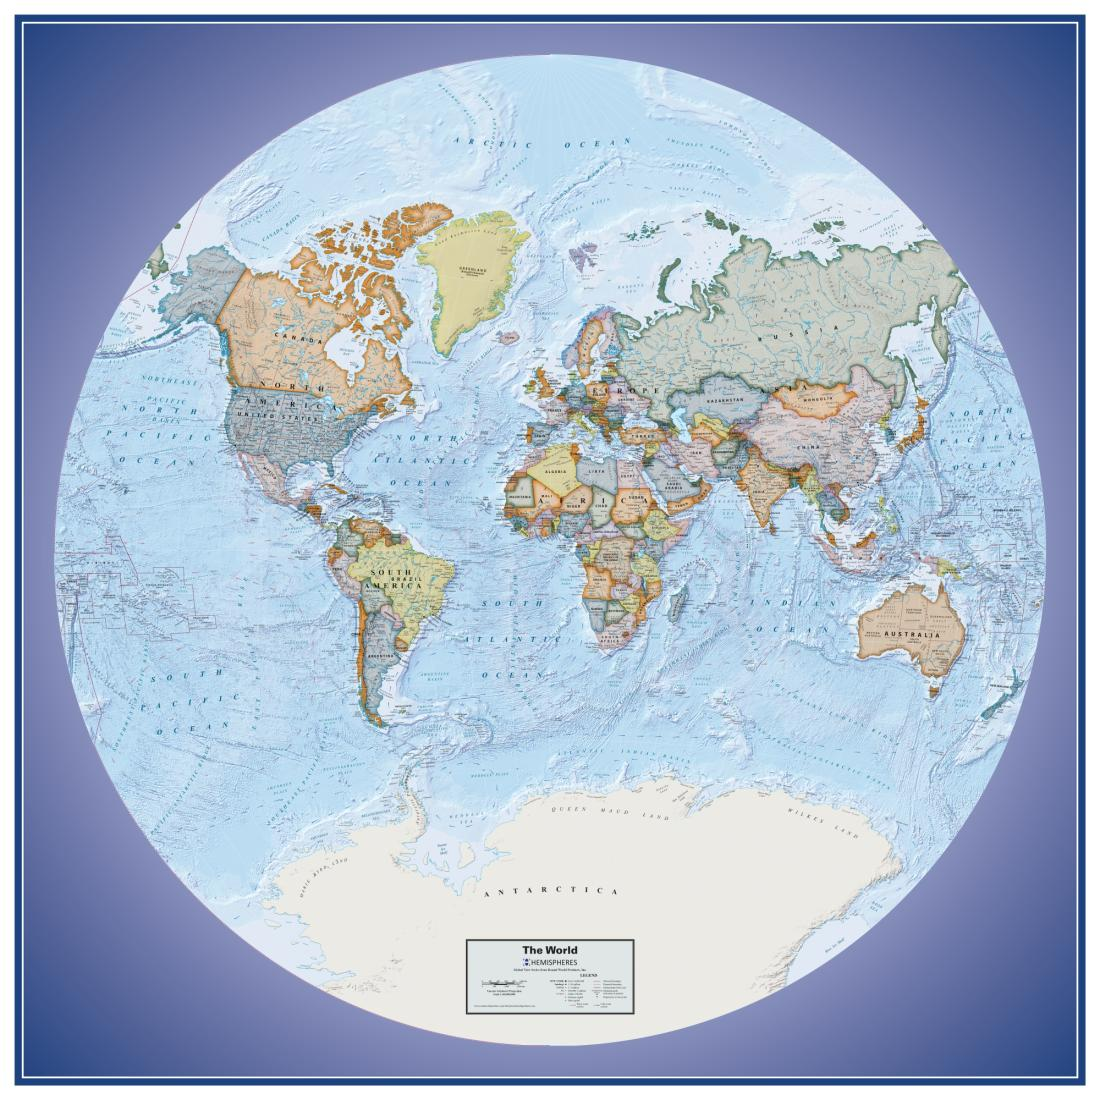 Hemispheres global view series world political wall map laminated hemispheres global view series world political wall map laminated edition by round world products inc gumiabroncs Choice Image